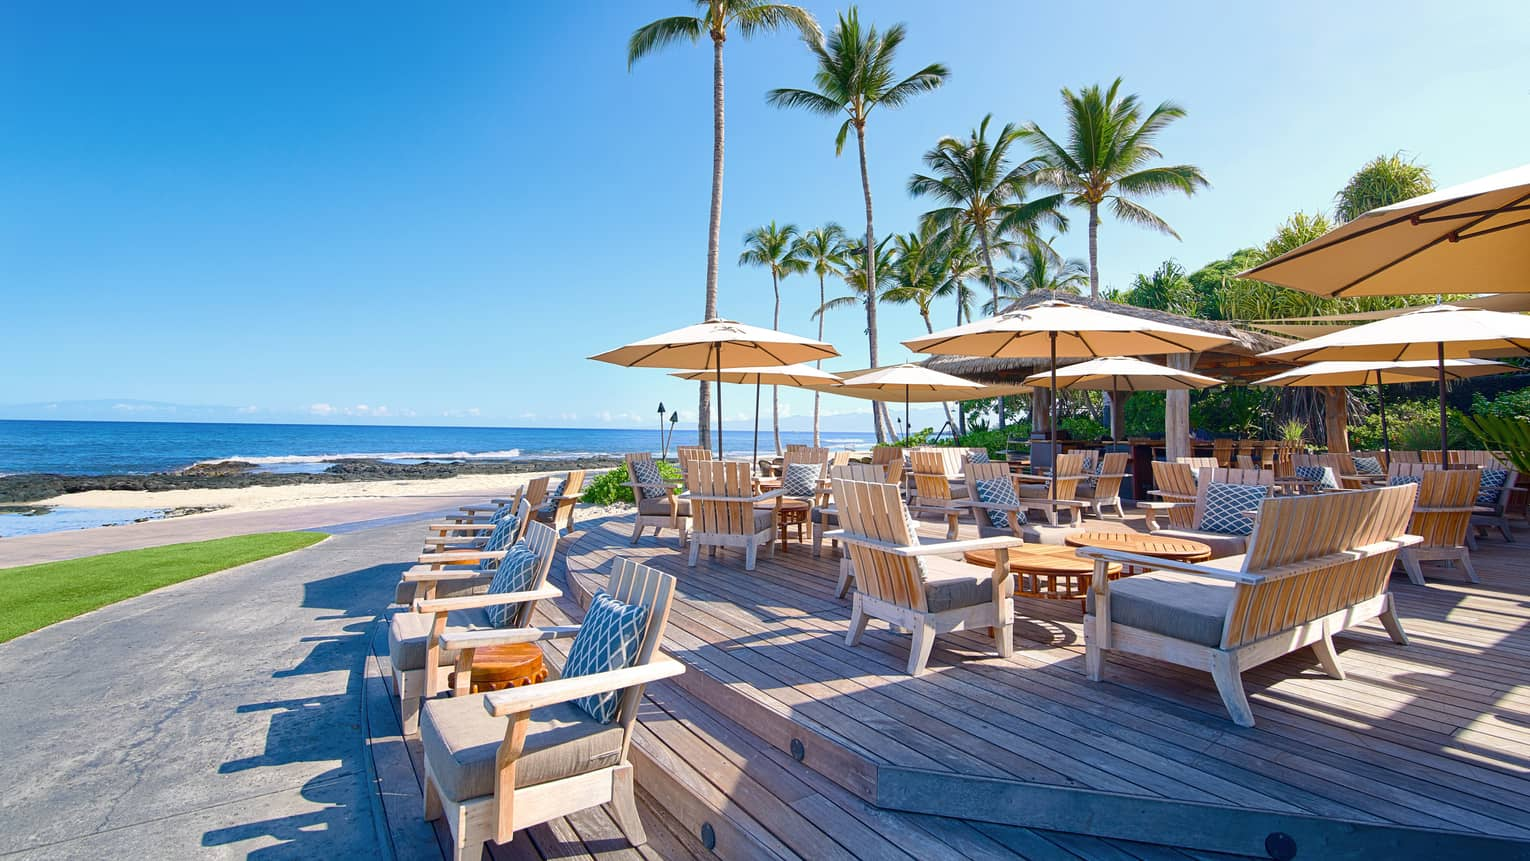 The Beach Tree Bar on a sunny day